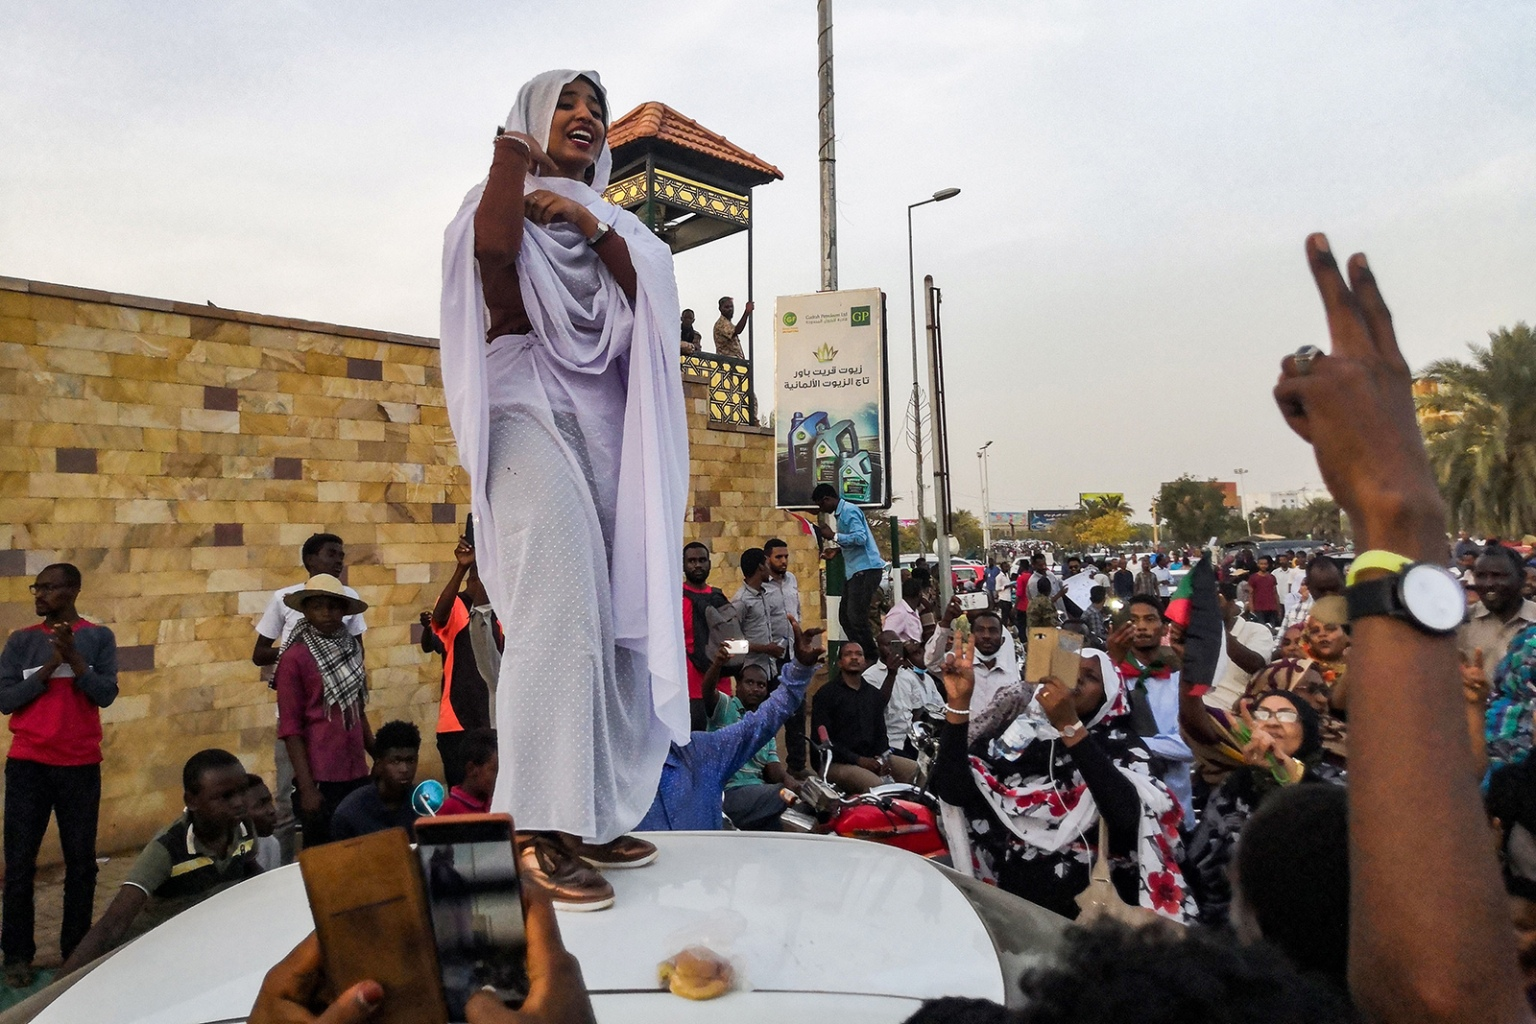 Alaa Salah, a Sudanese woman who propelled to fame earlier this week after clips went viral of her leading chants against President Omar al-Bashir, addresses protesters during a demonstration in front of the military headquarters in the capital Khartoum on April 10. -/AFP/Getty Images